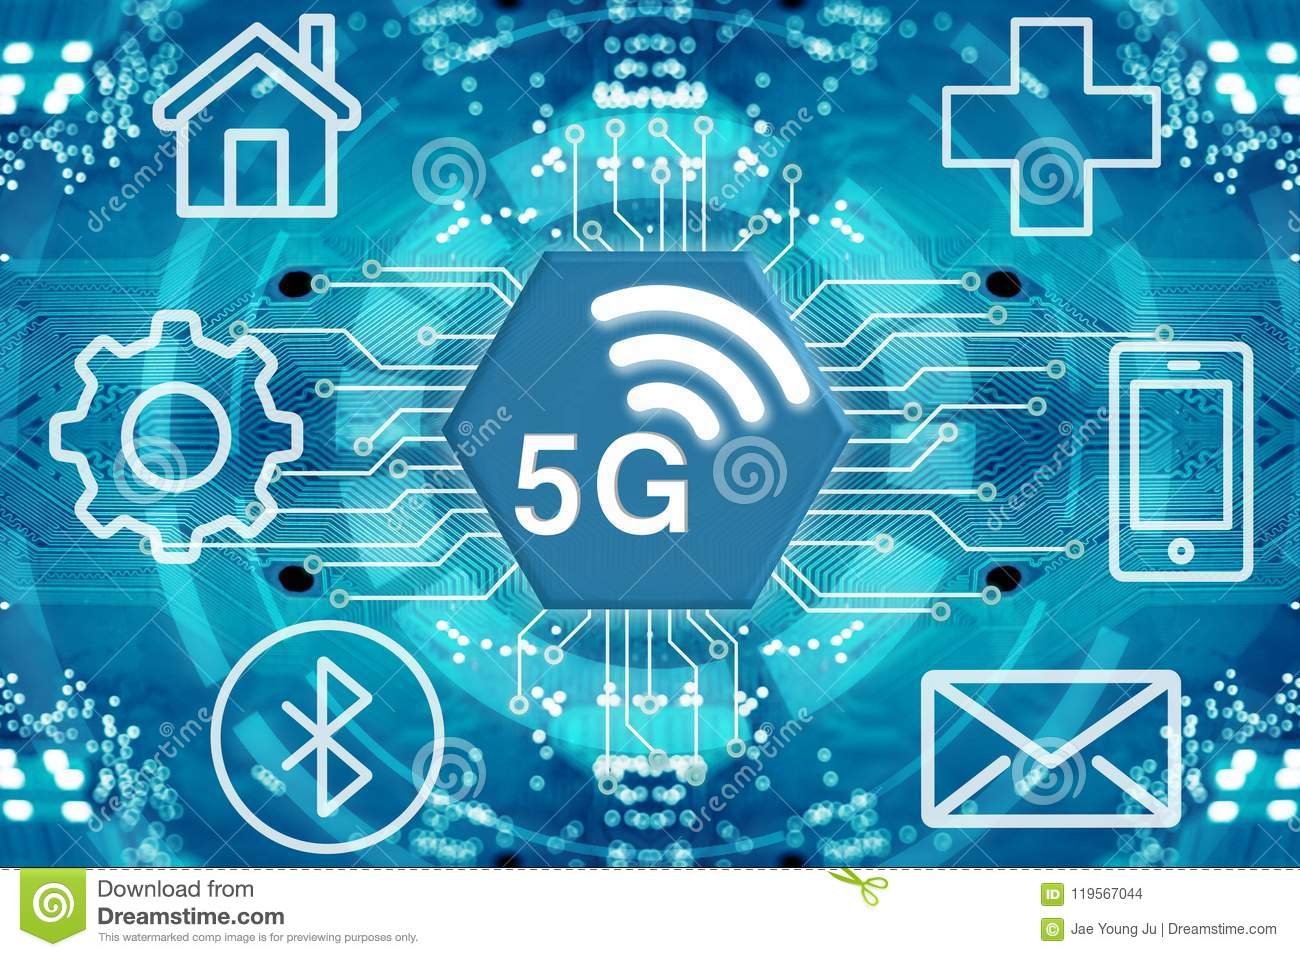 5g Network Wireless Systems And Internet Stock Illustration Communication Circuit Diagram Of Things With Abstract Connected Dots On Background